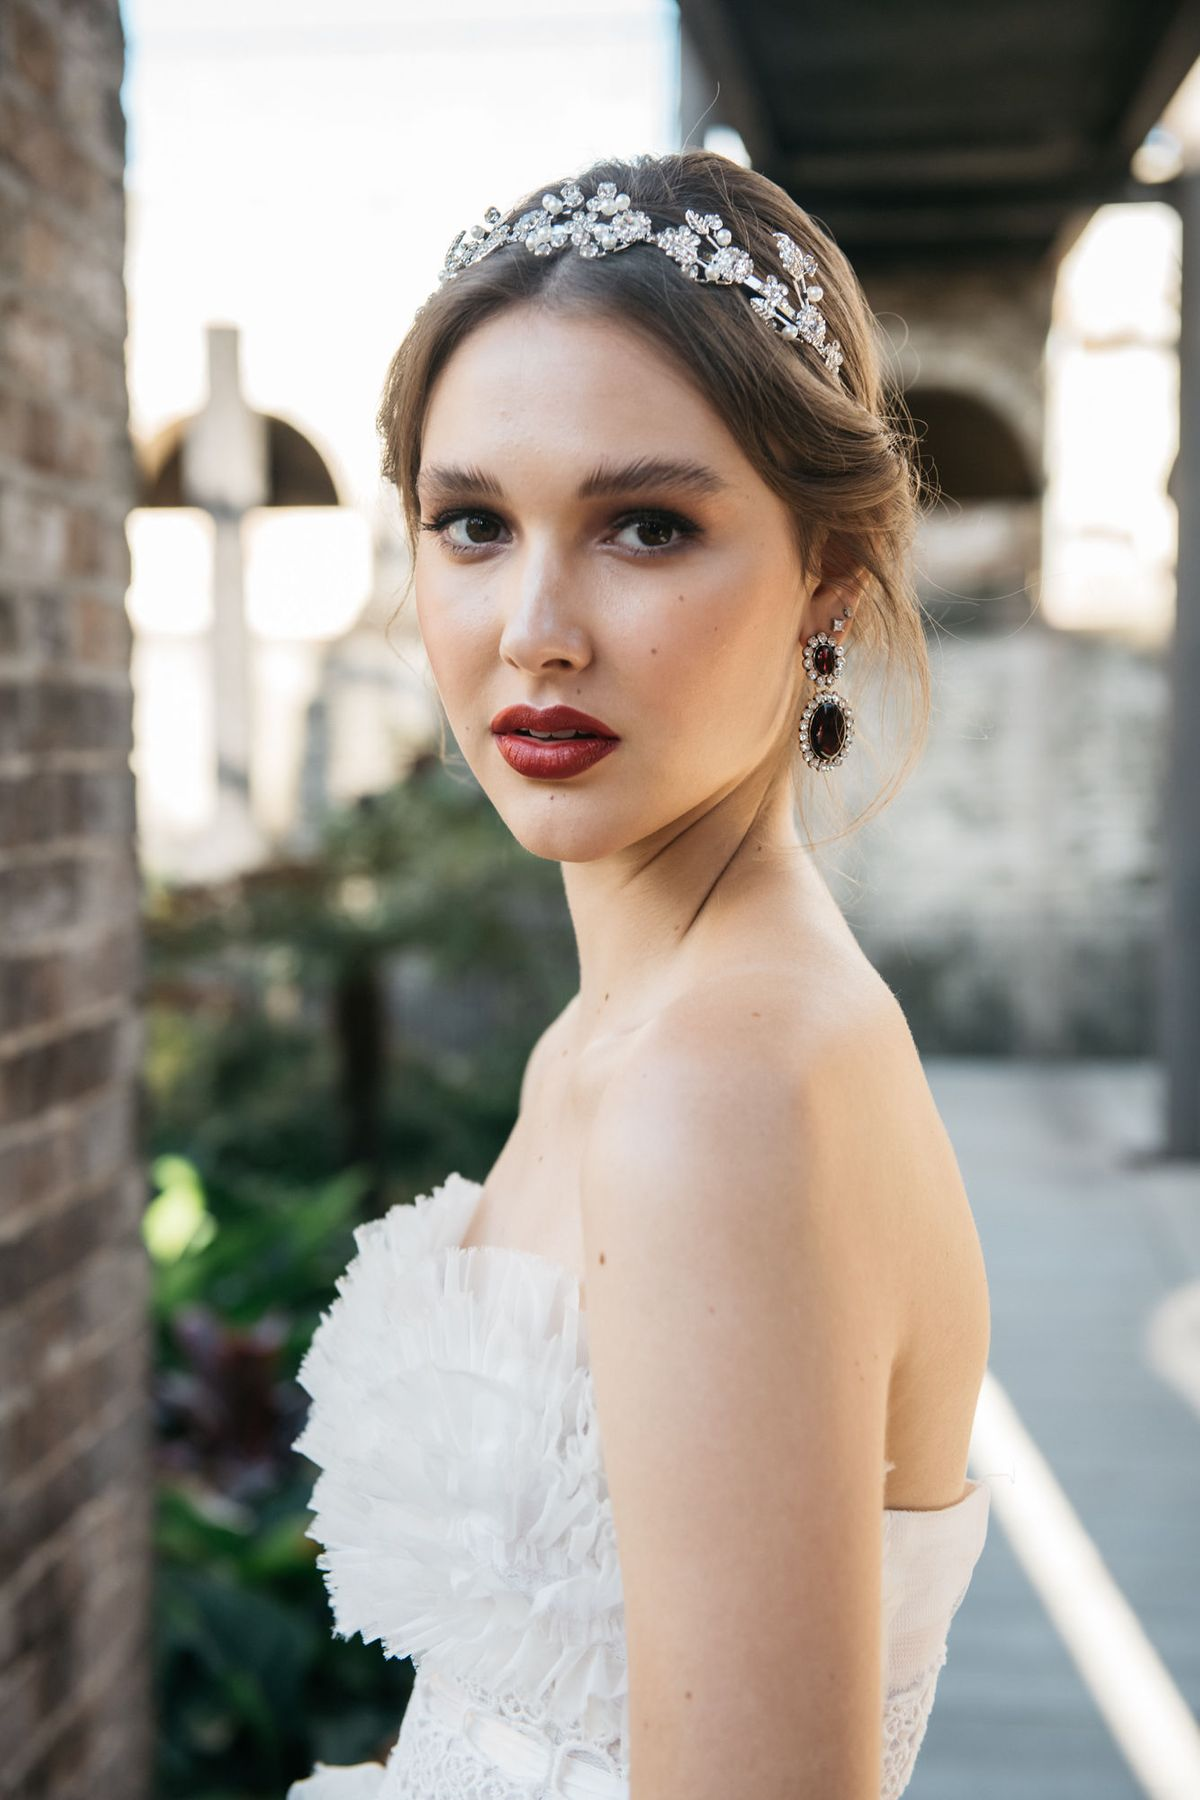 Bridal hair & makeup sydney